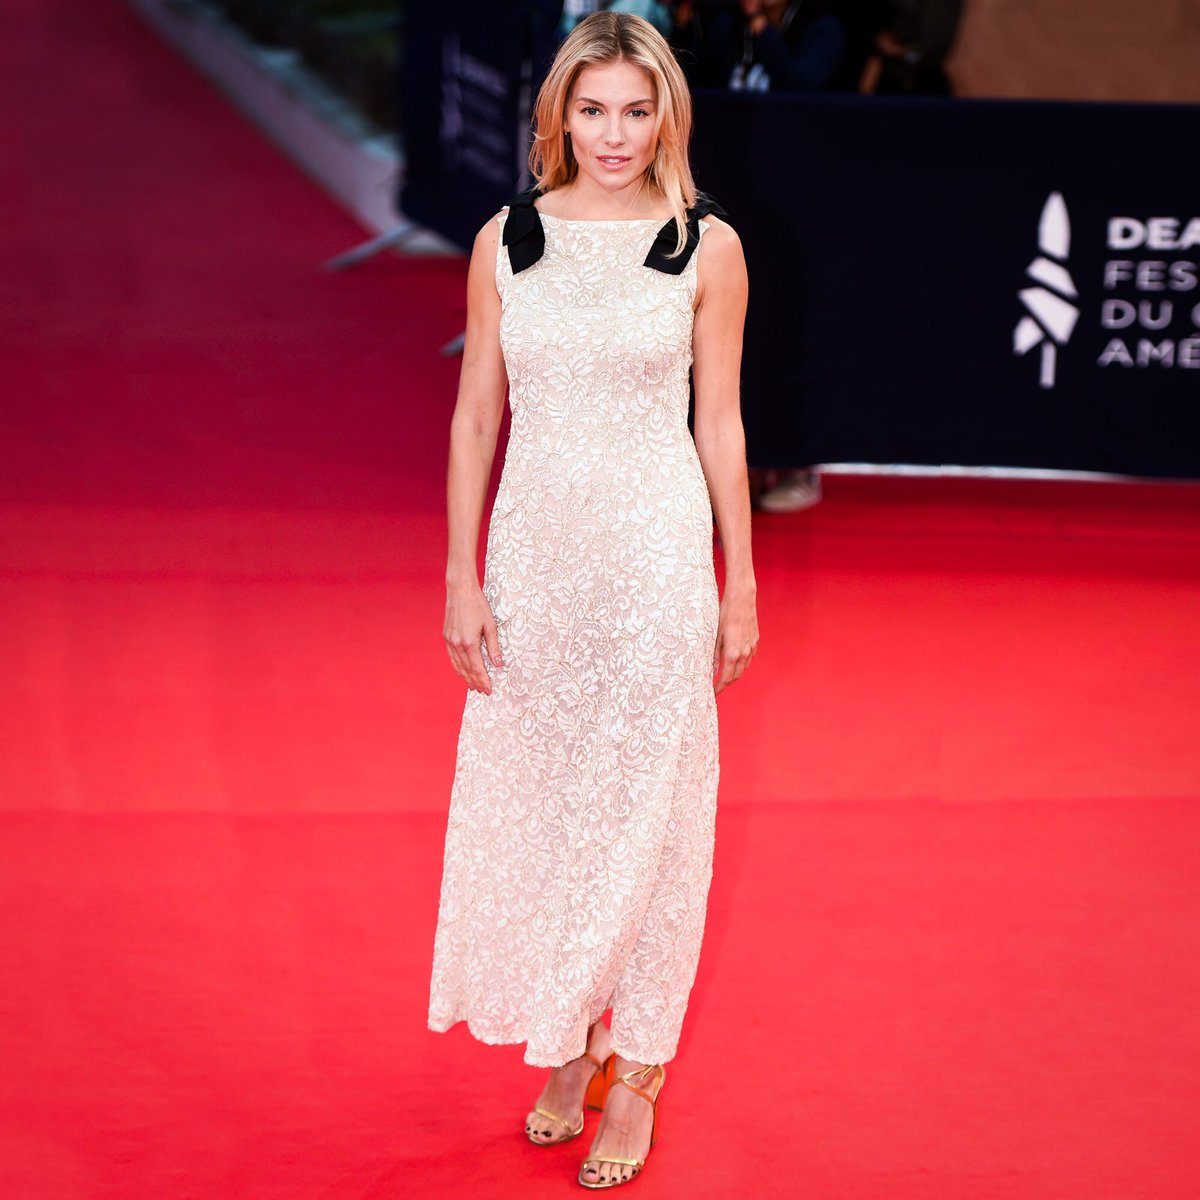 Actress Sienna Miller wore a white and gold lace dress from the #CHANELCruise 2019/20 collection for the premiere of 'American Woman' at #Deauville2019.#CHANELinCinema